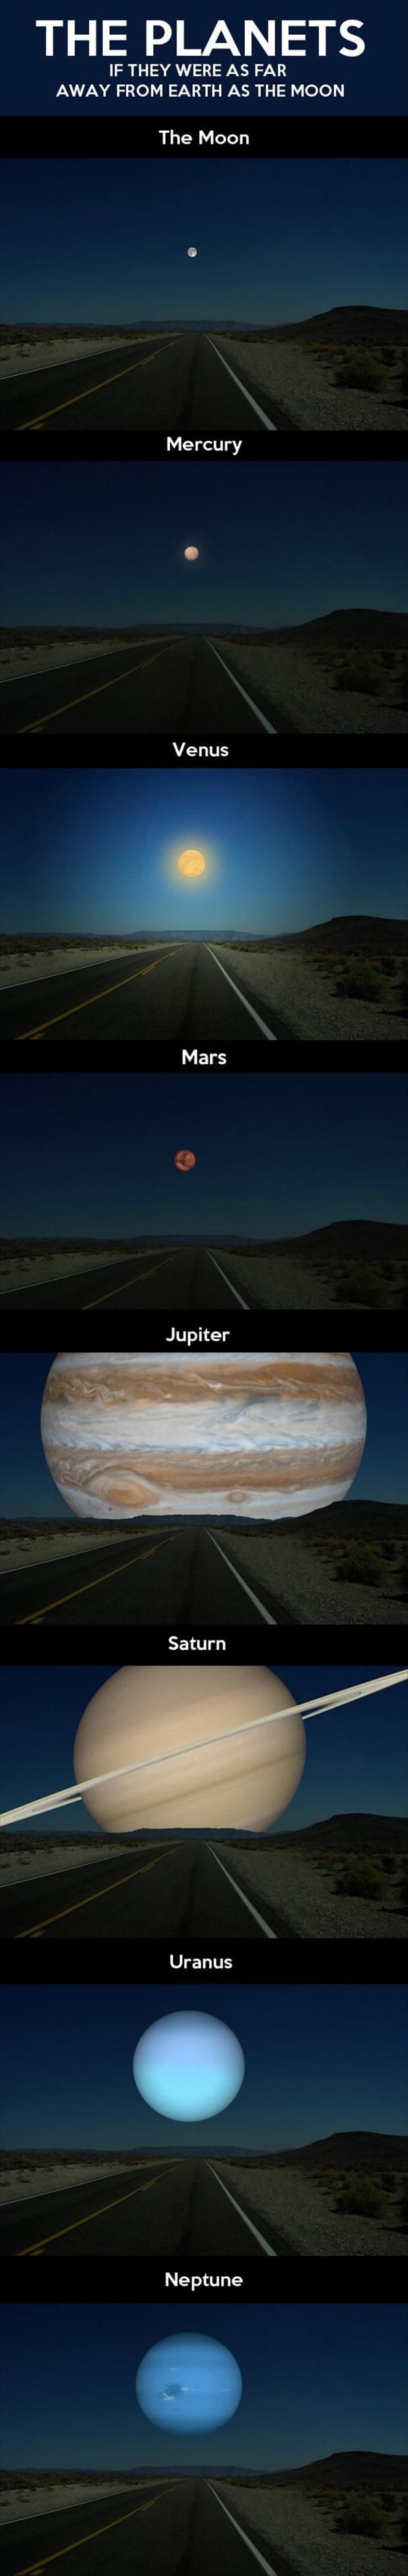 If planets were same distance as moon...